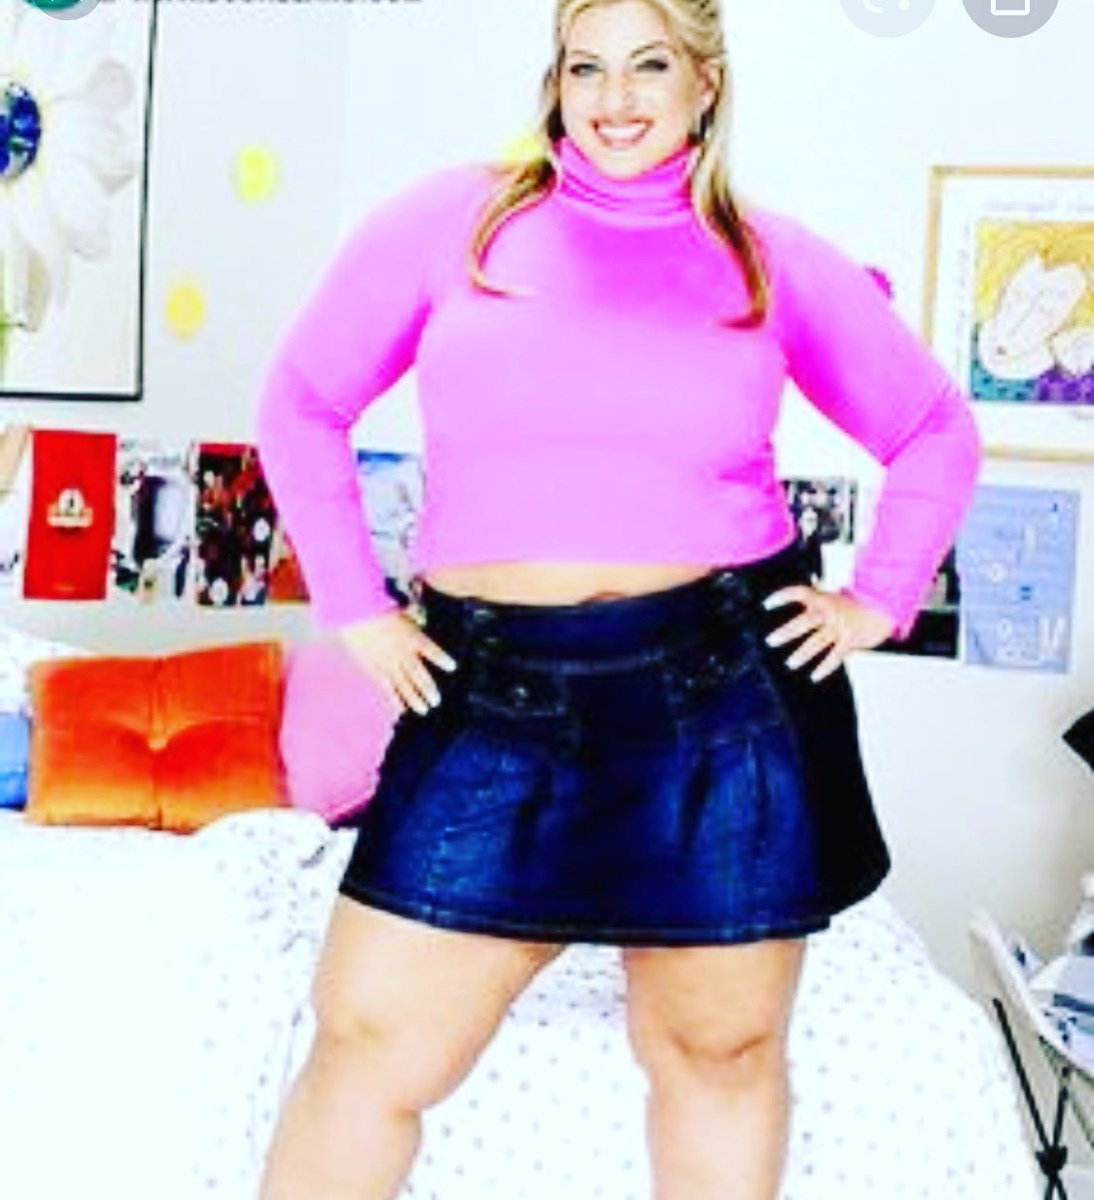 #memorymonday You're too fat they said you'll never make it they said you don't look like a young blonde skinny schoolgirl they said You got a big nose they said well look at me making it and shit 💁♀️🖕🖕